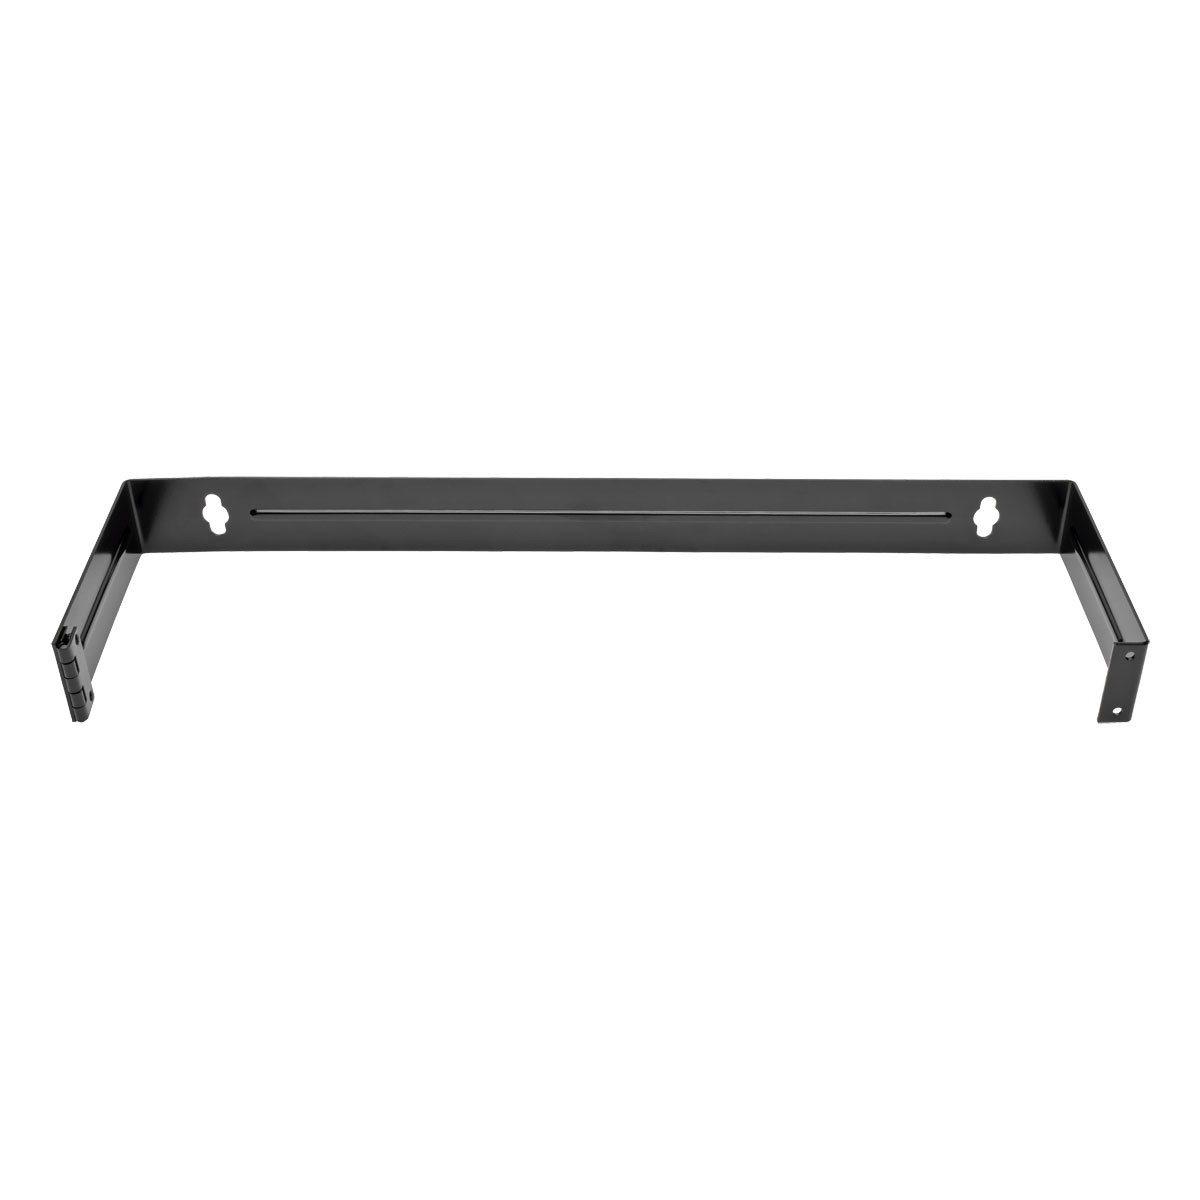 1U Hinged Wallmount Patch Panel Mounting Bracket - Patch panel mount bracket - black - 1U - 19 inch